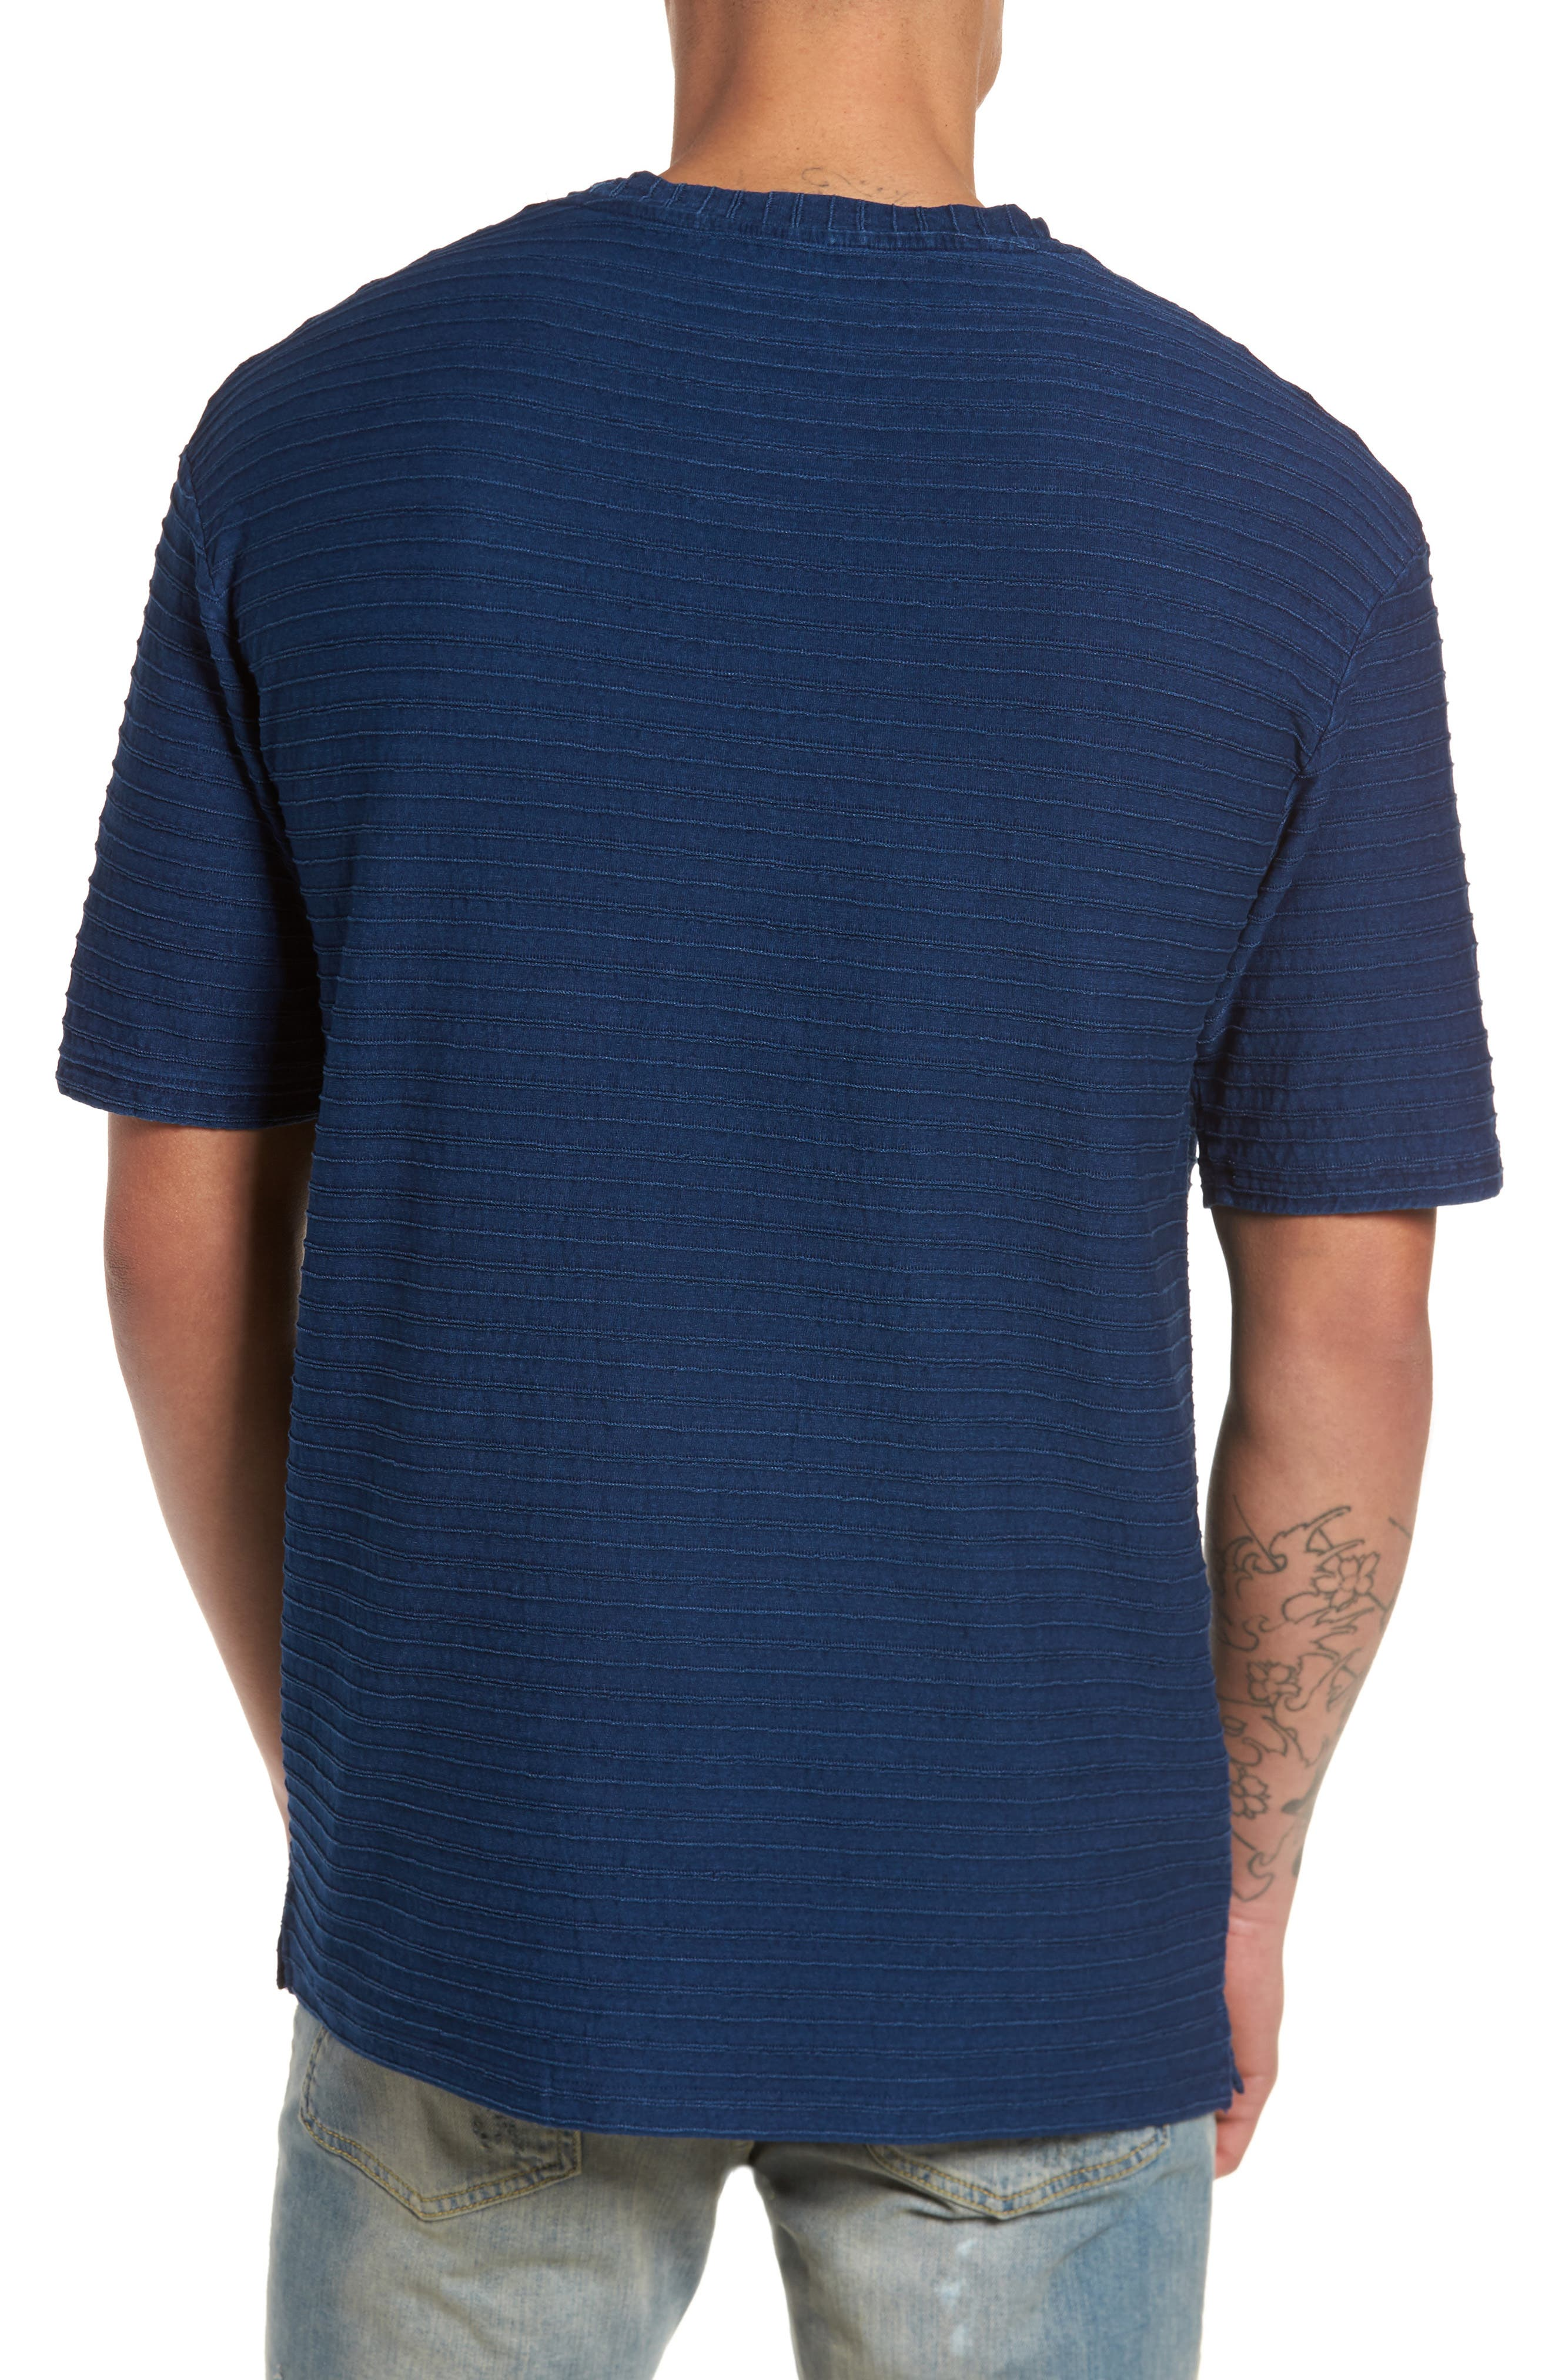 Tidal T-Shirt,                             Alternate thumbnail 2, color,                             Indigo